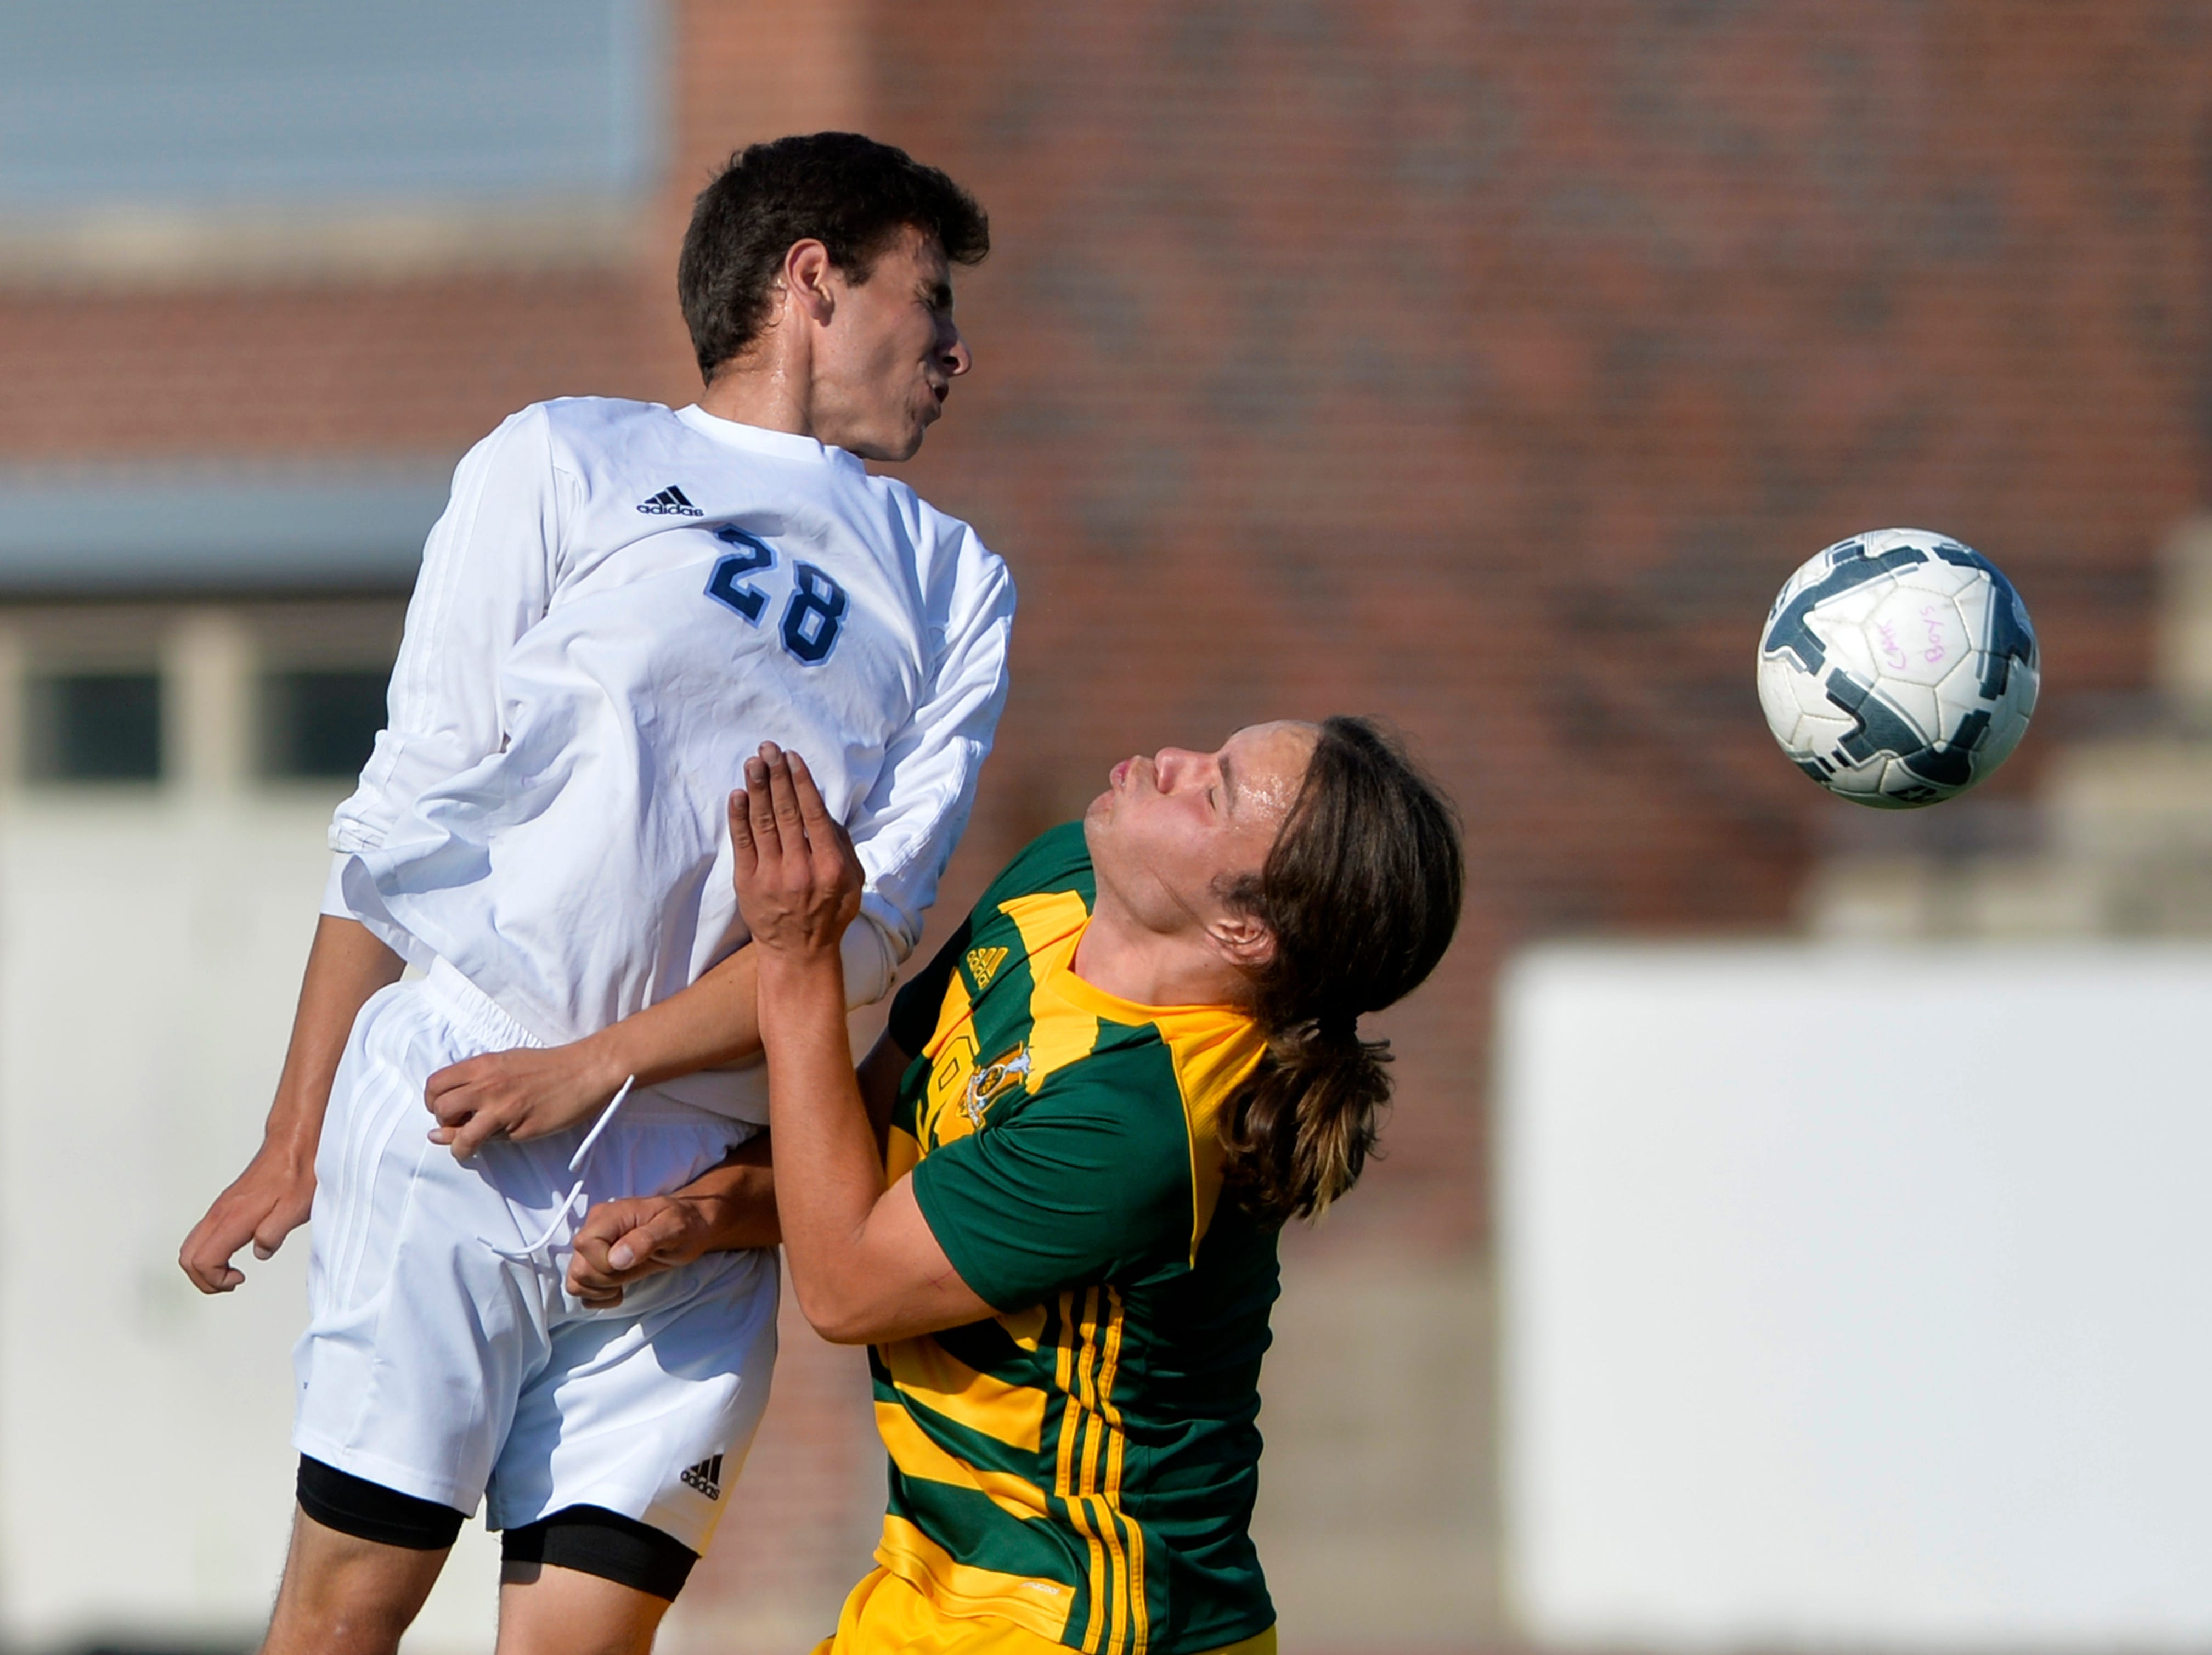 Great Falls High's Brian Gemberling wins a header over CMR's Seamus Jennings during the crosstown soccer match at Memorial Stadium, Thursday, Sept. 6, 2018.